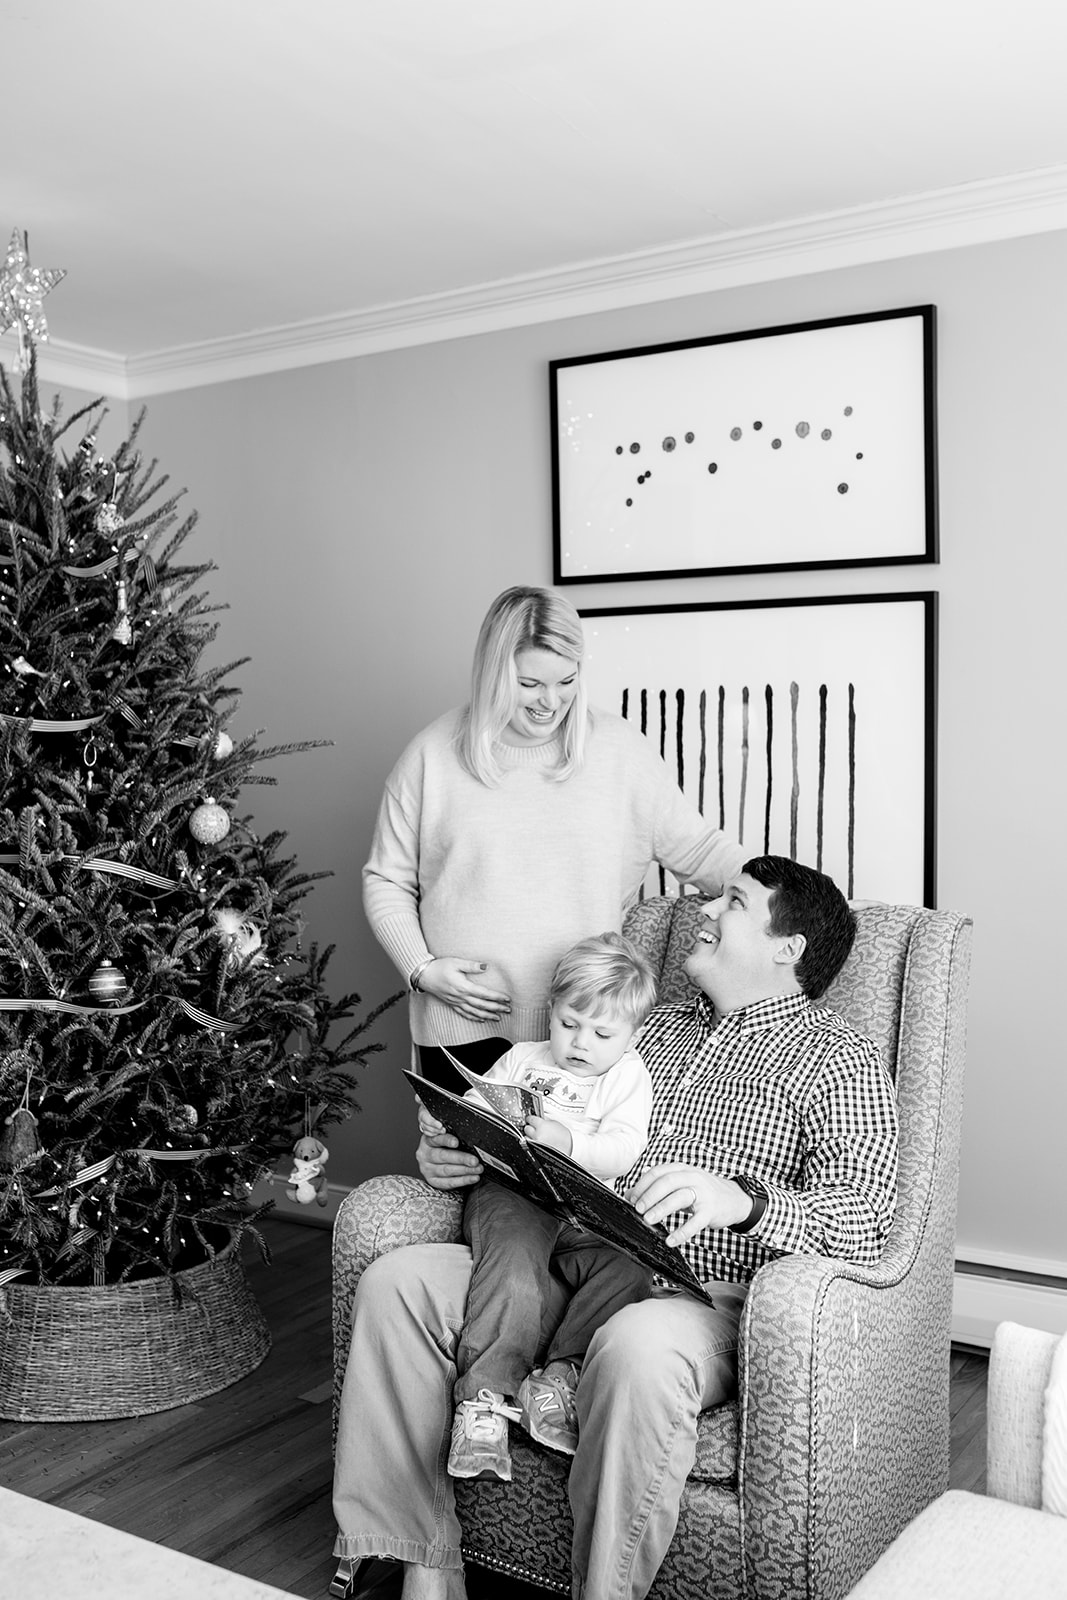 Cary Family Christmas At Home Maternity Shoot - Image Property of www.j-dphoto.com